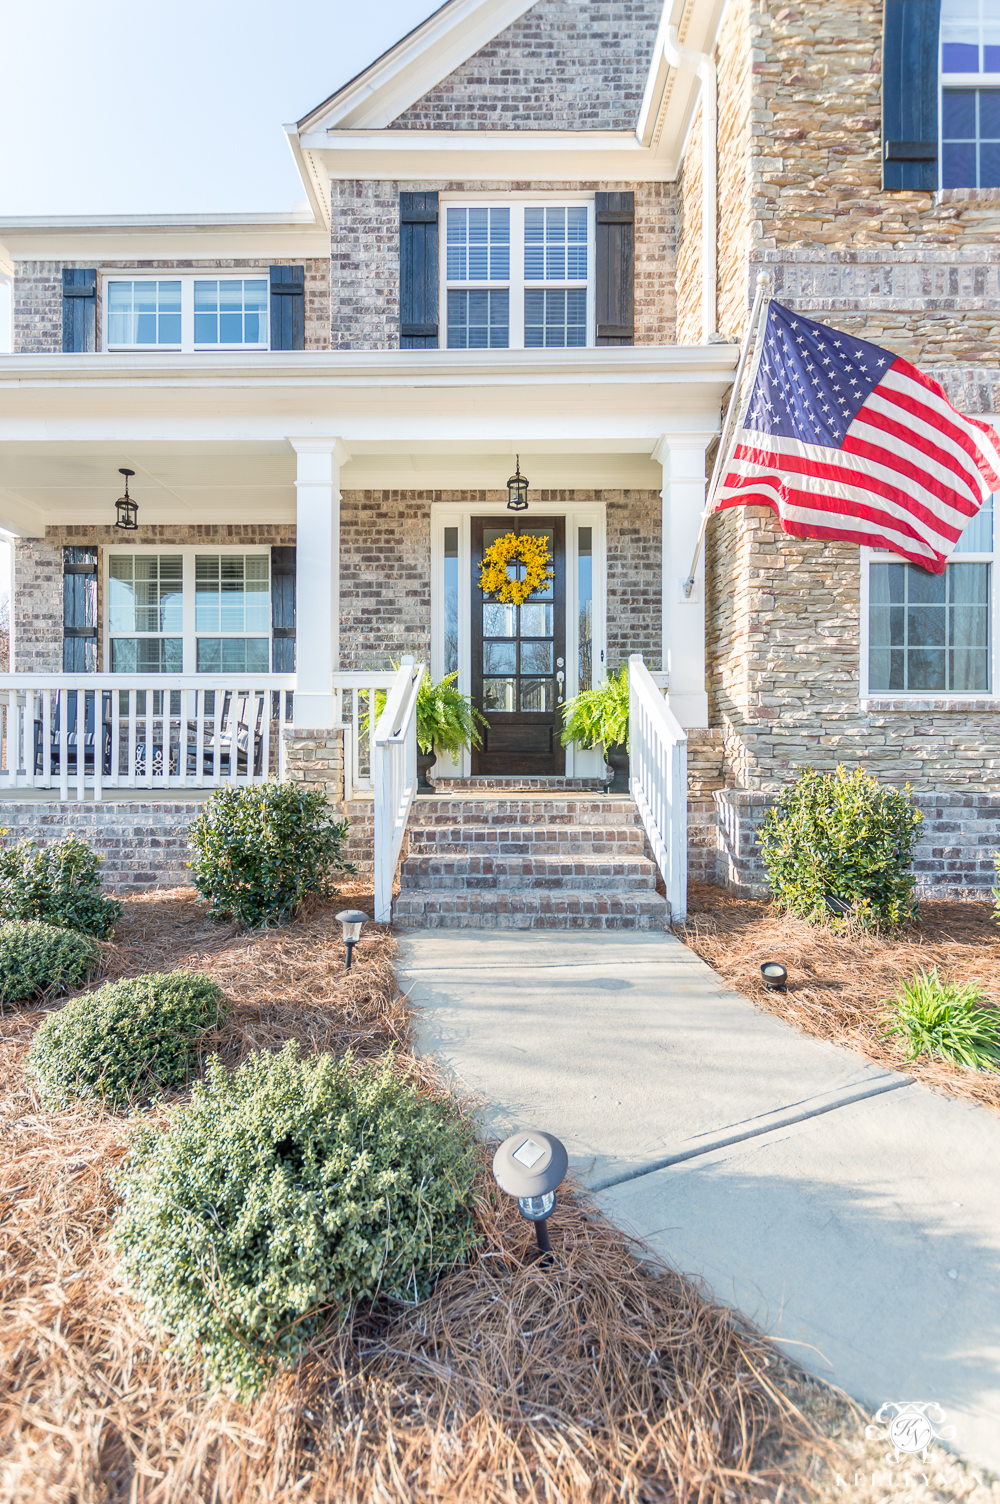 Traditional Craftsman Style Home with American Flag